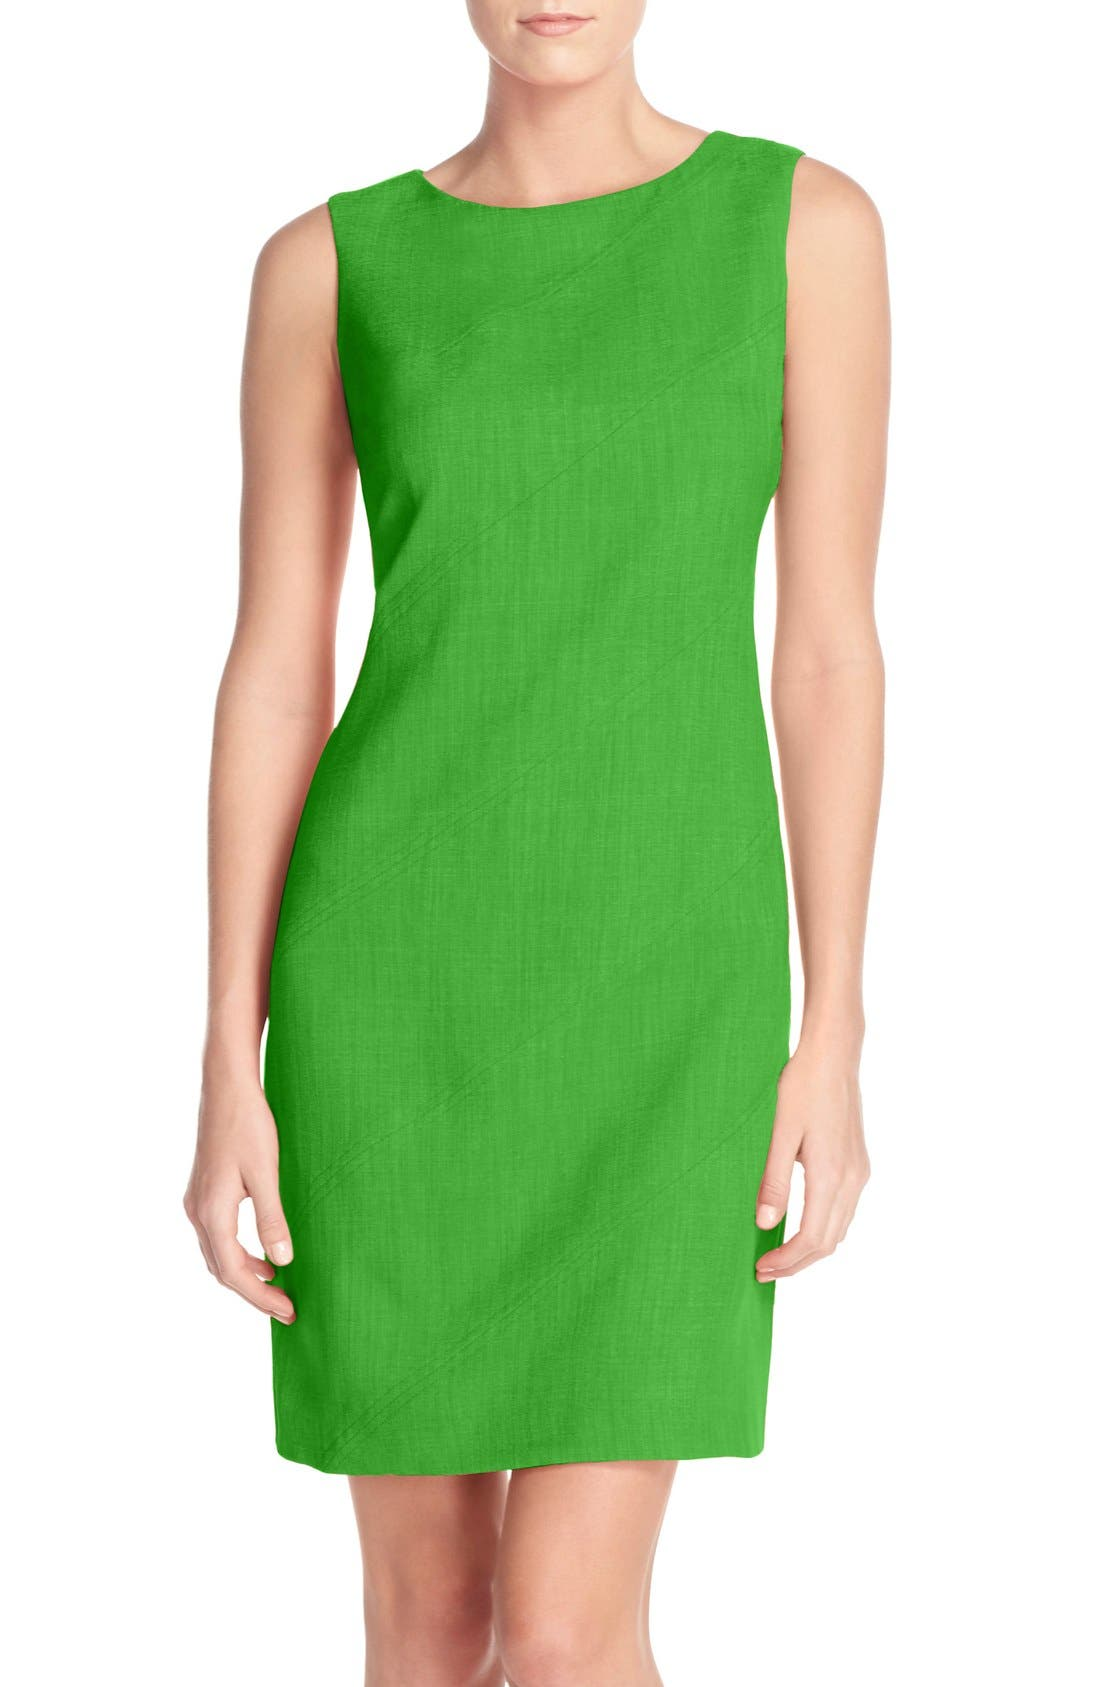 Alternate Image 1 Selected - Ellen Tracy Seam Sheath Dress (Regular & Petite)